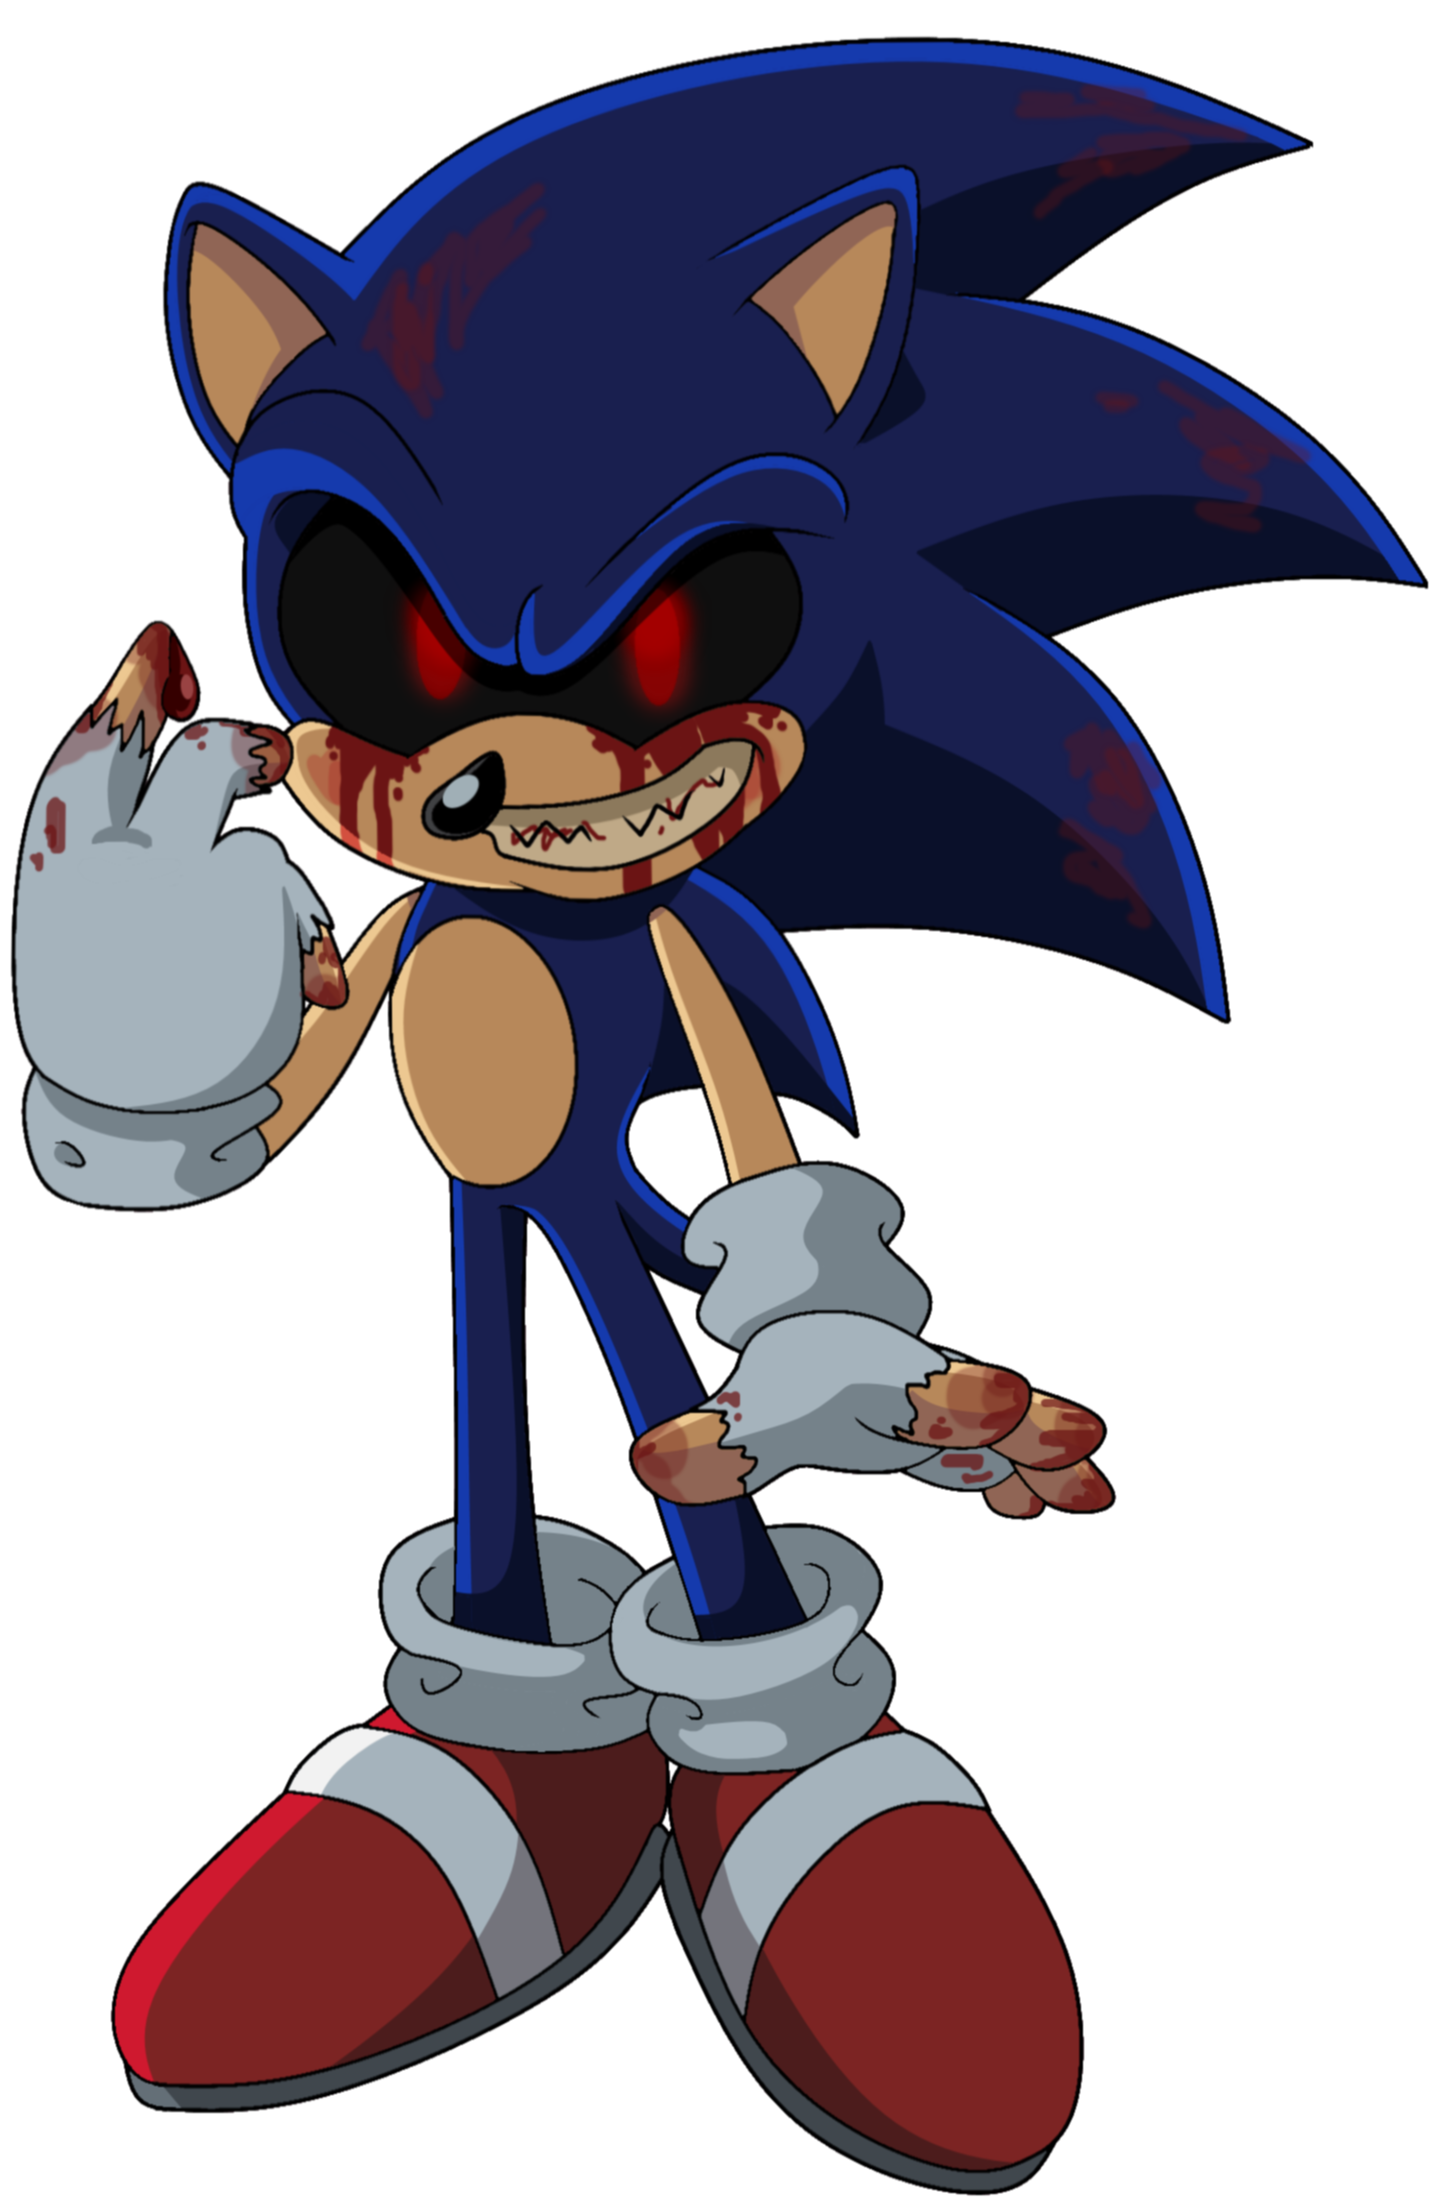 Sonic.exe by SiIent-AngeI on DeviantArt